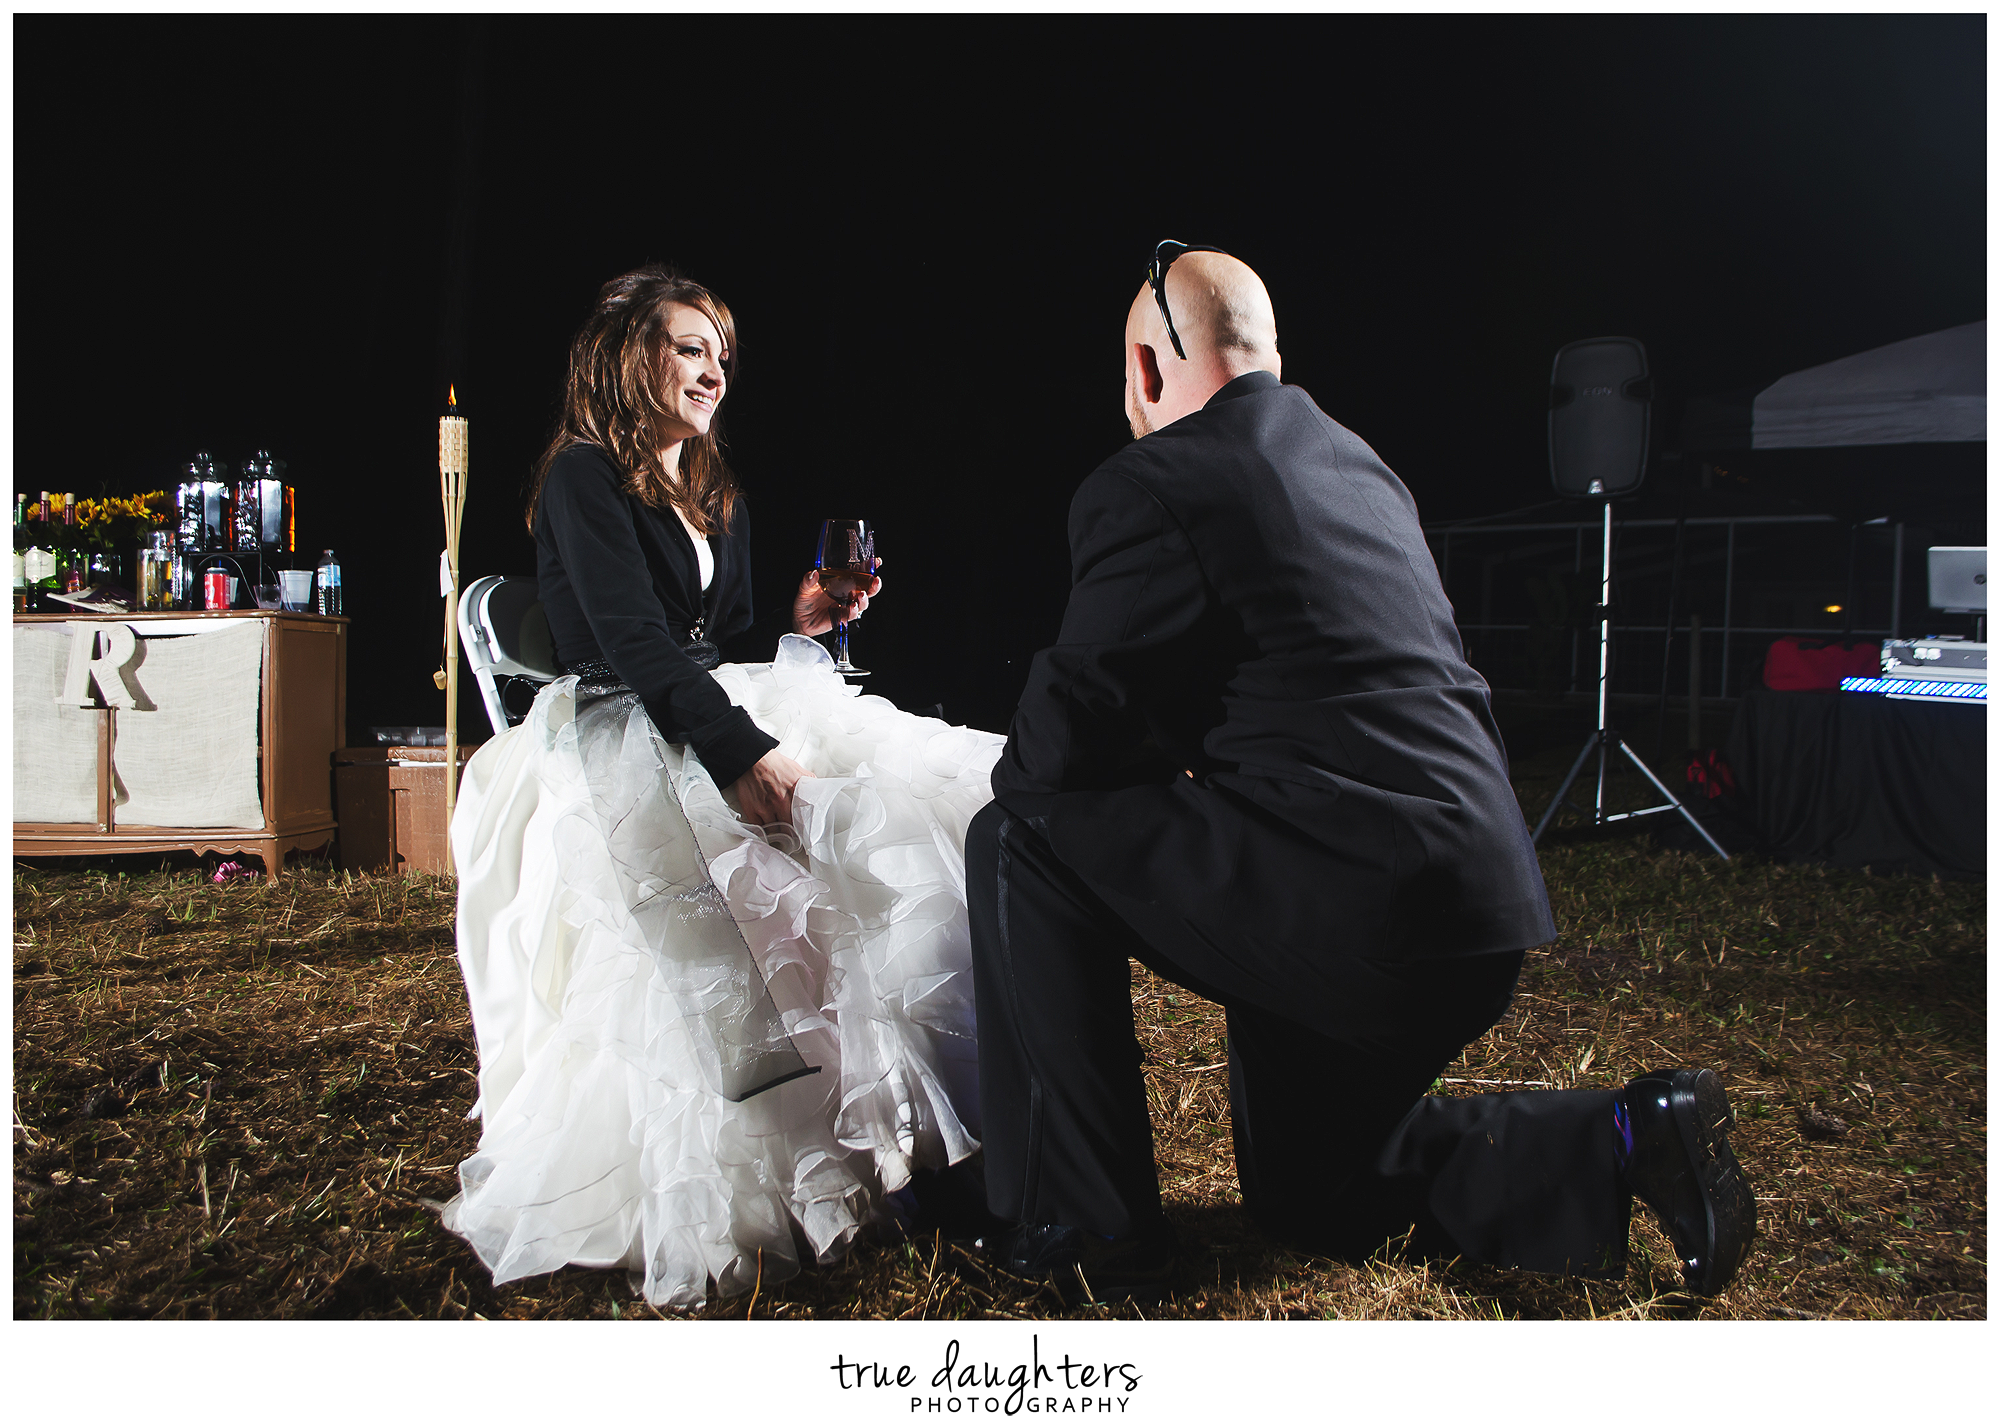 True_Daughters_Photography_Campitelli_Wedding-44.png